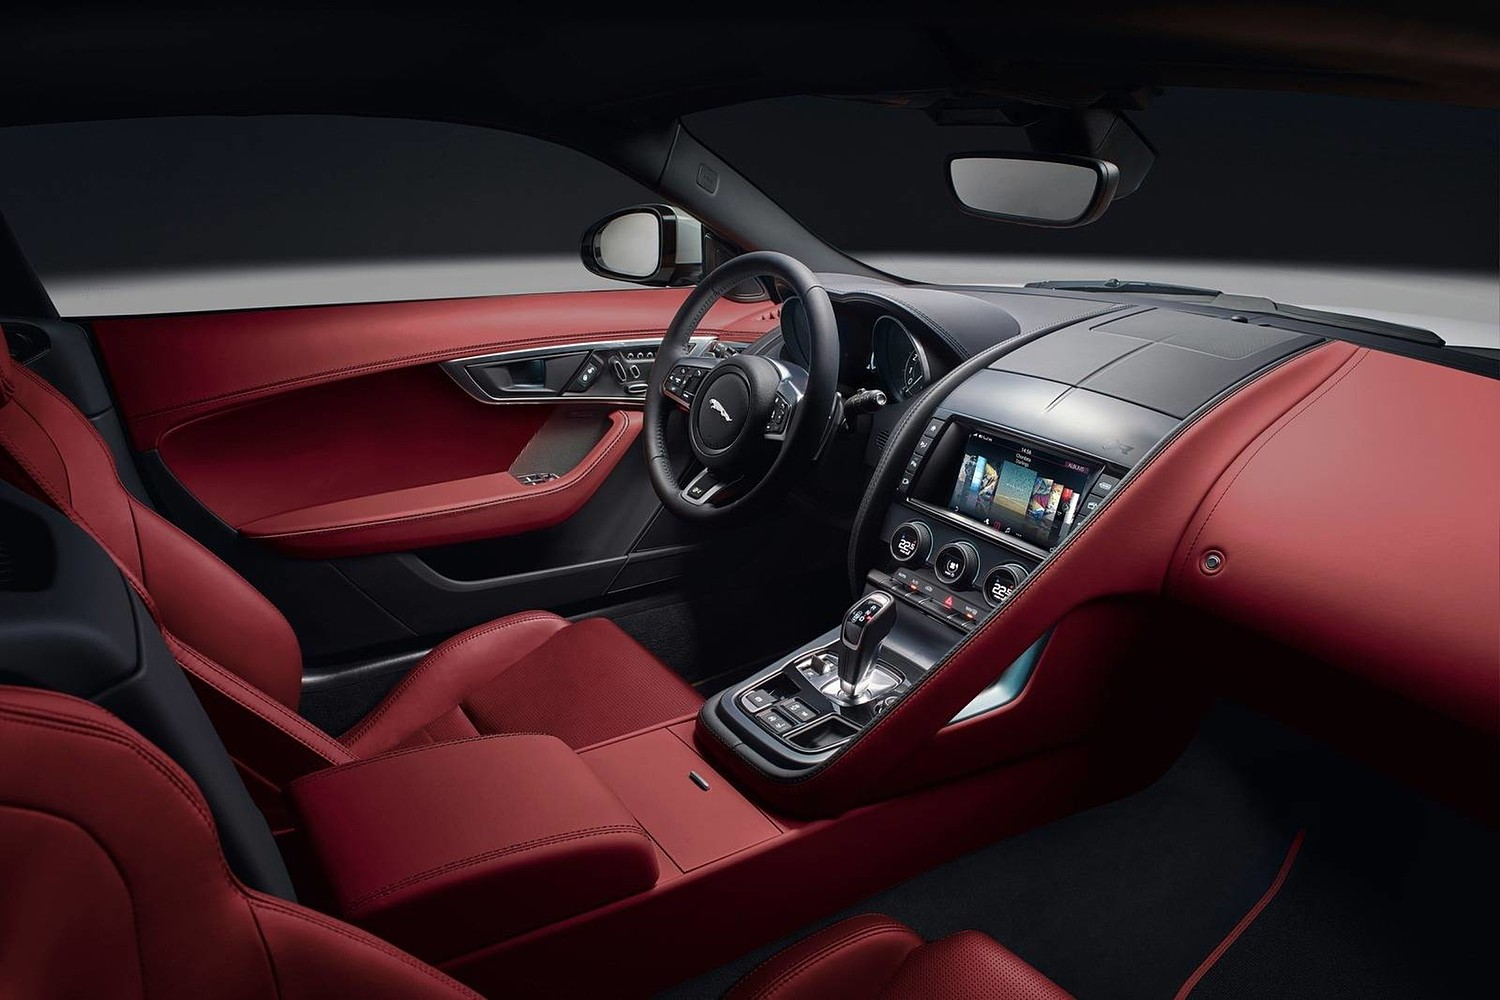 2018 Jaguar F-TYPE R Coupe Dashboard Shown